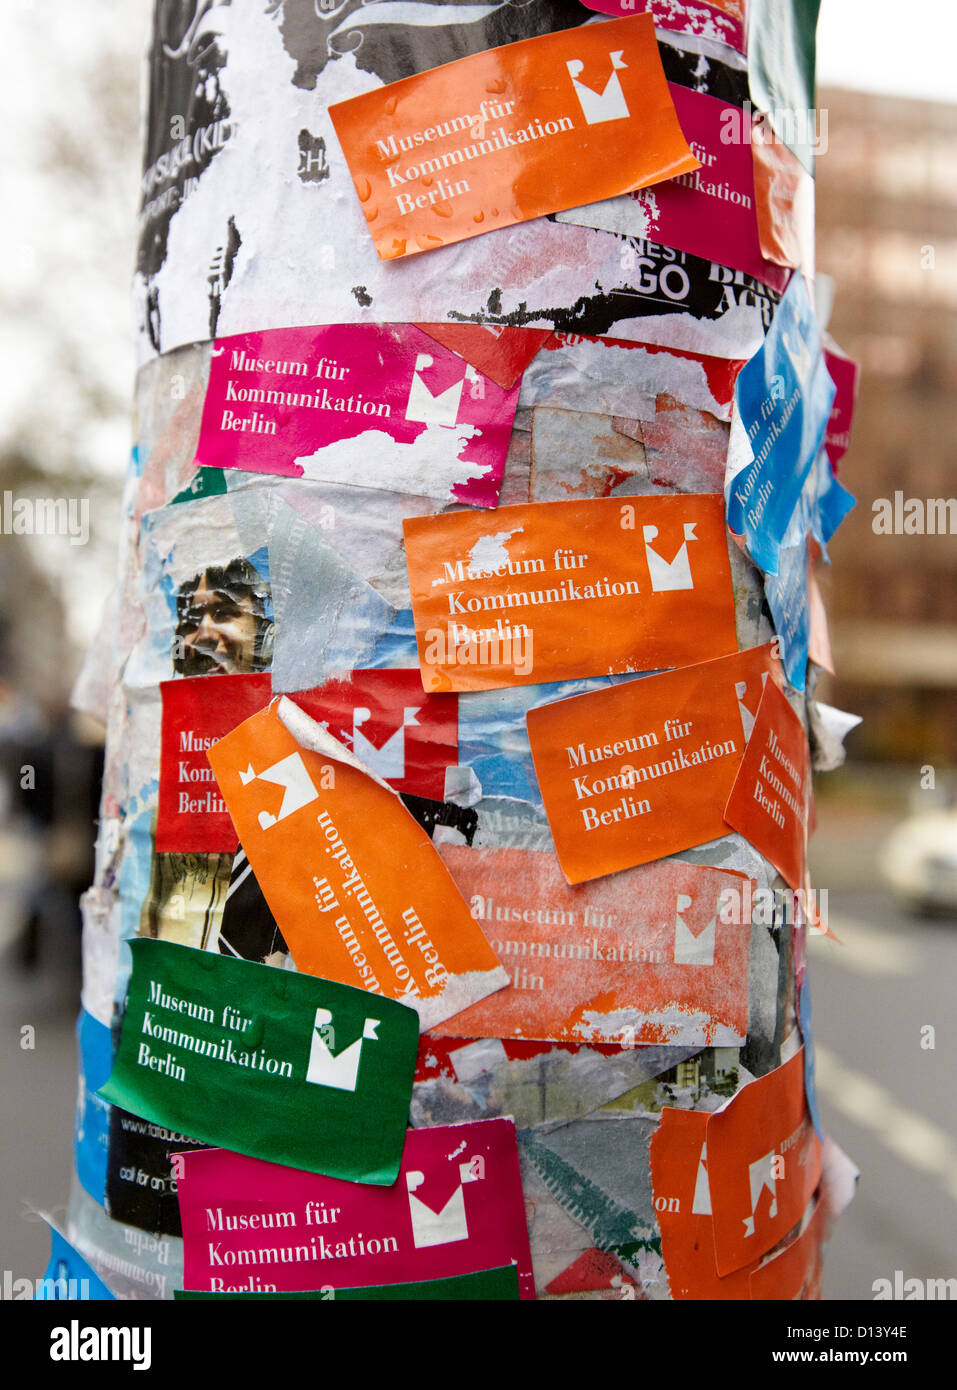 Lampost Stickers Berlin Germany - Stock Image